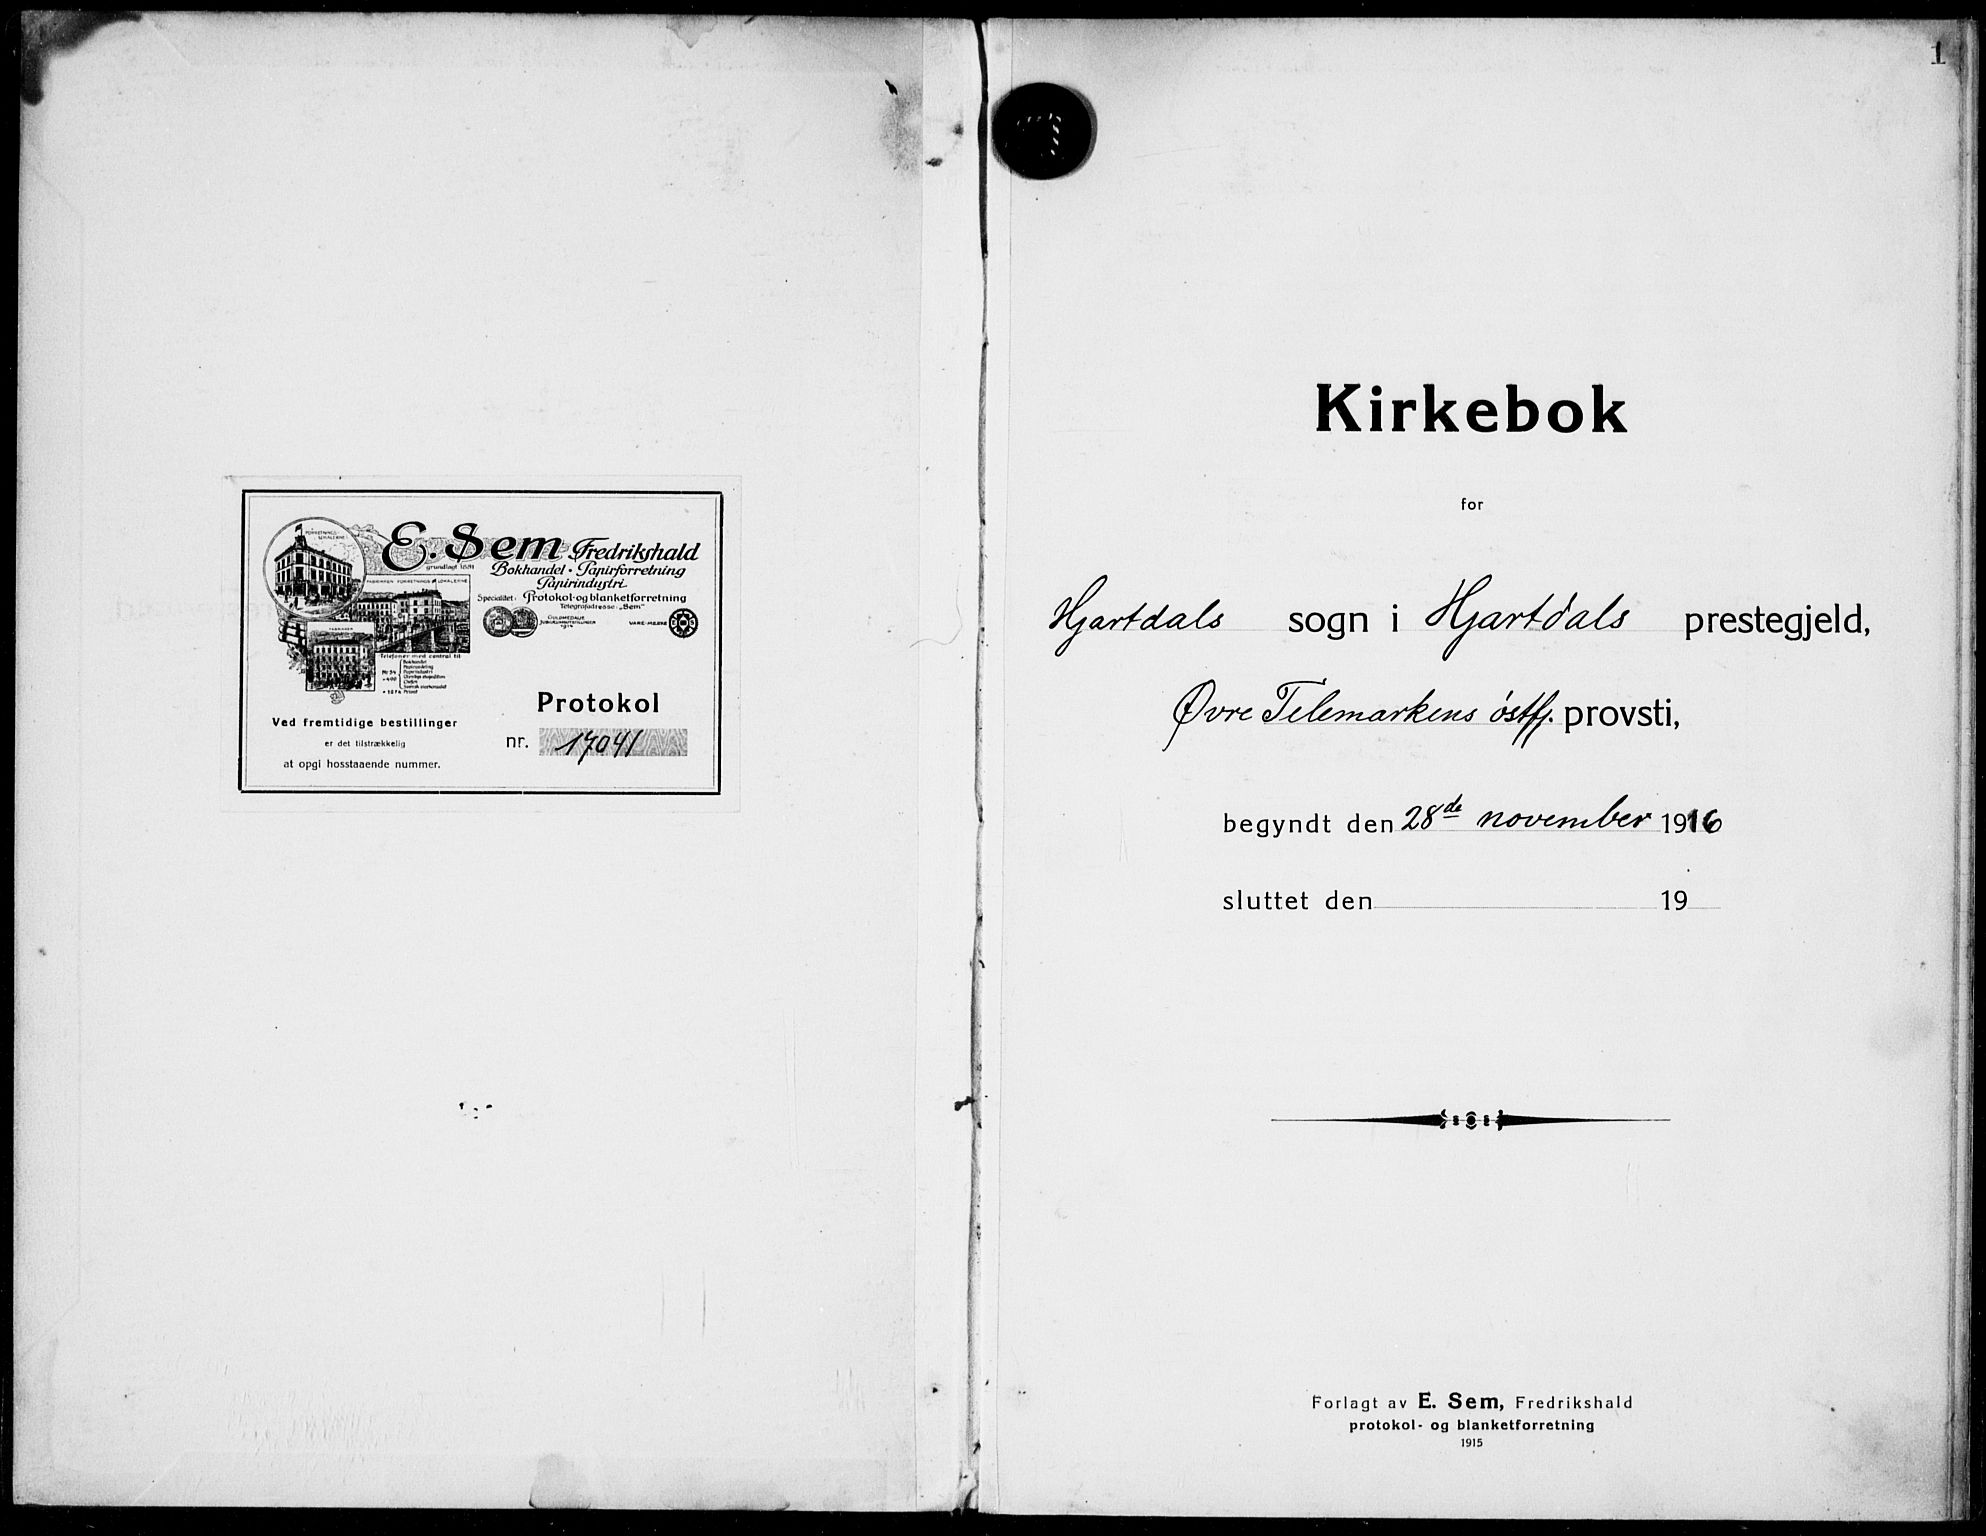 SAKO, Hjartdal kirkebøker, F/Fa/L0011: Parish register (official) no. I 11, 1916-1929, p. 1